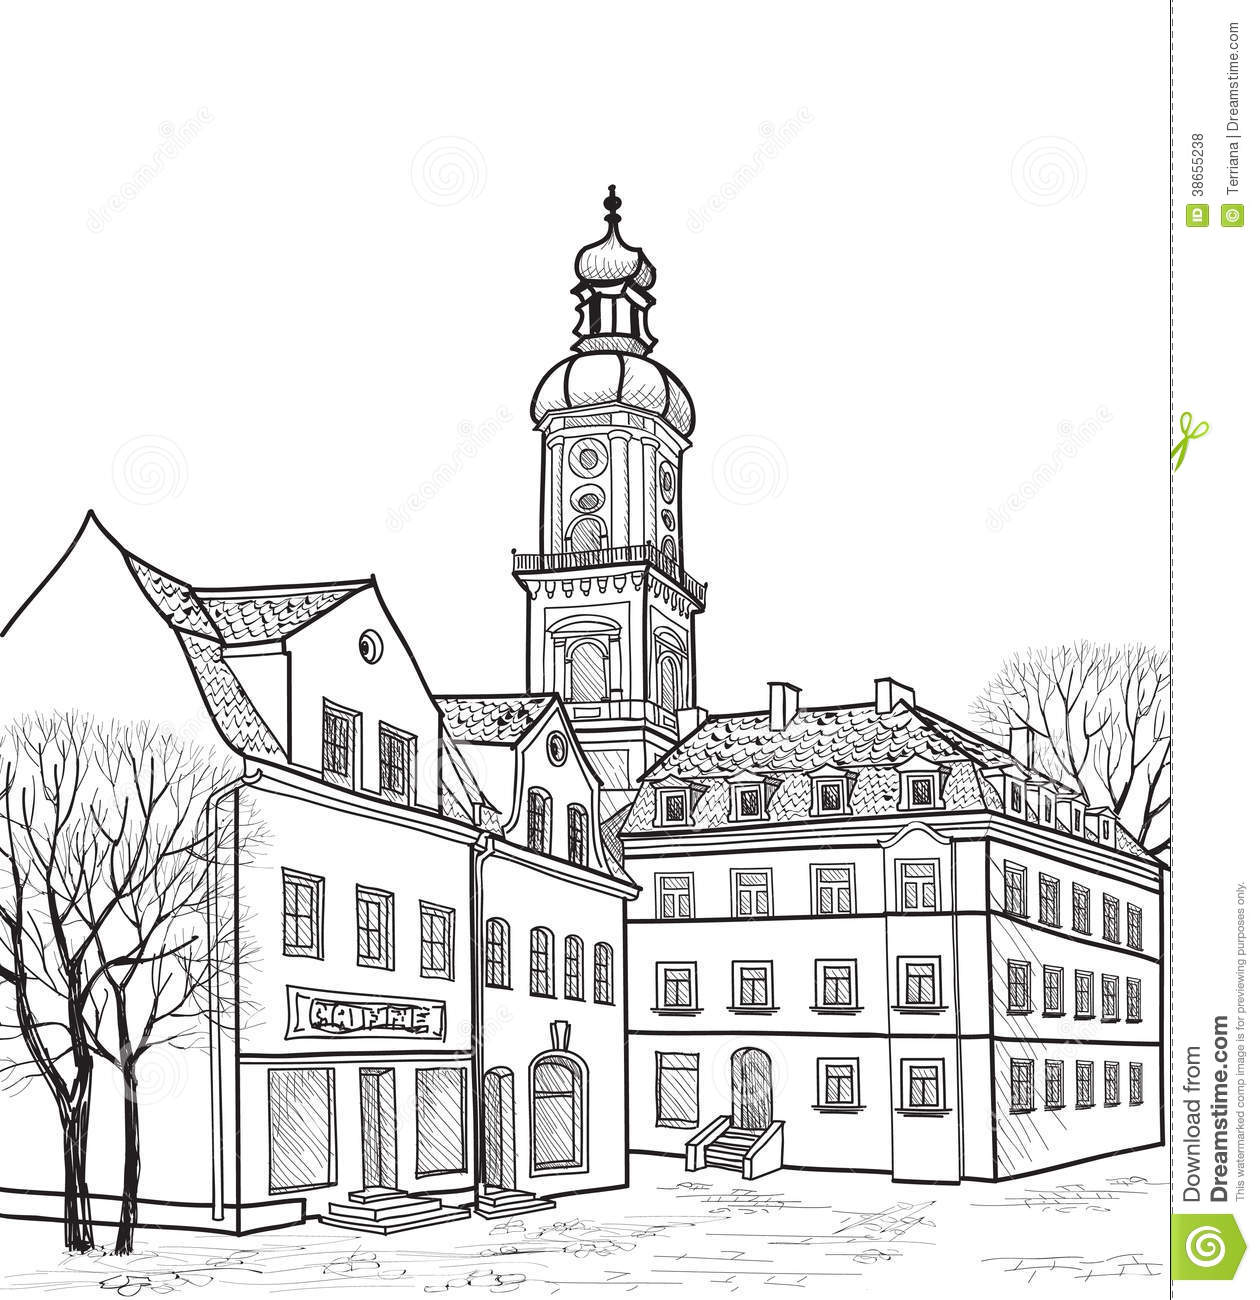 Pedestrian Street In Old Town Sketch Perspective Stock